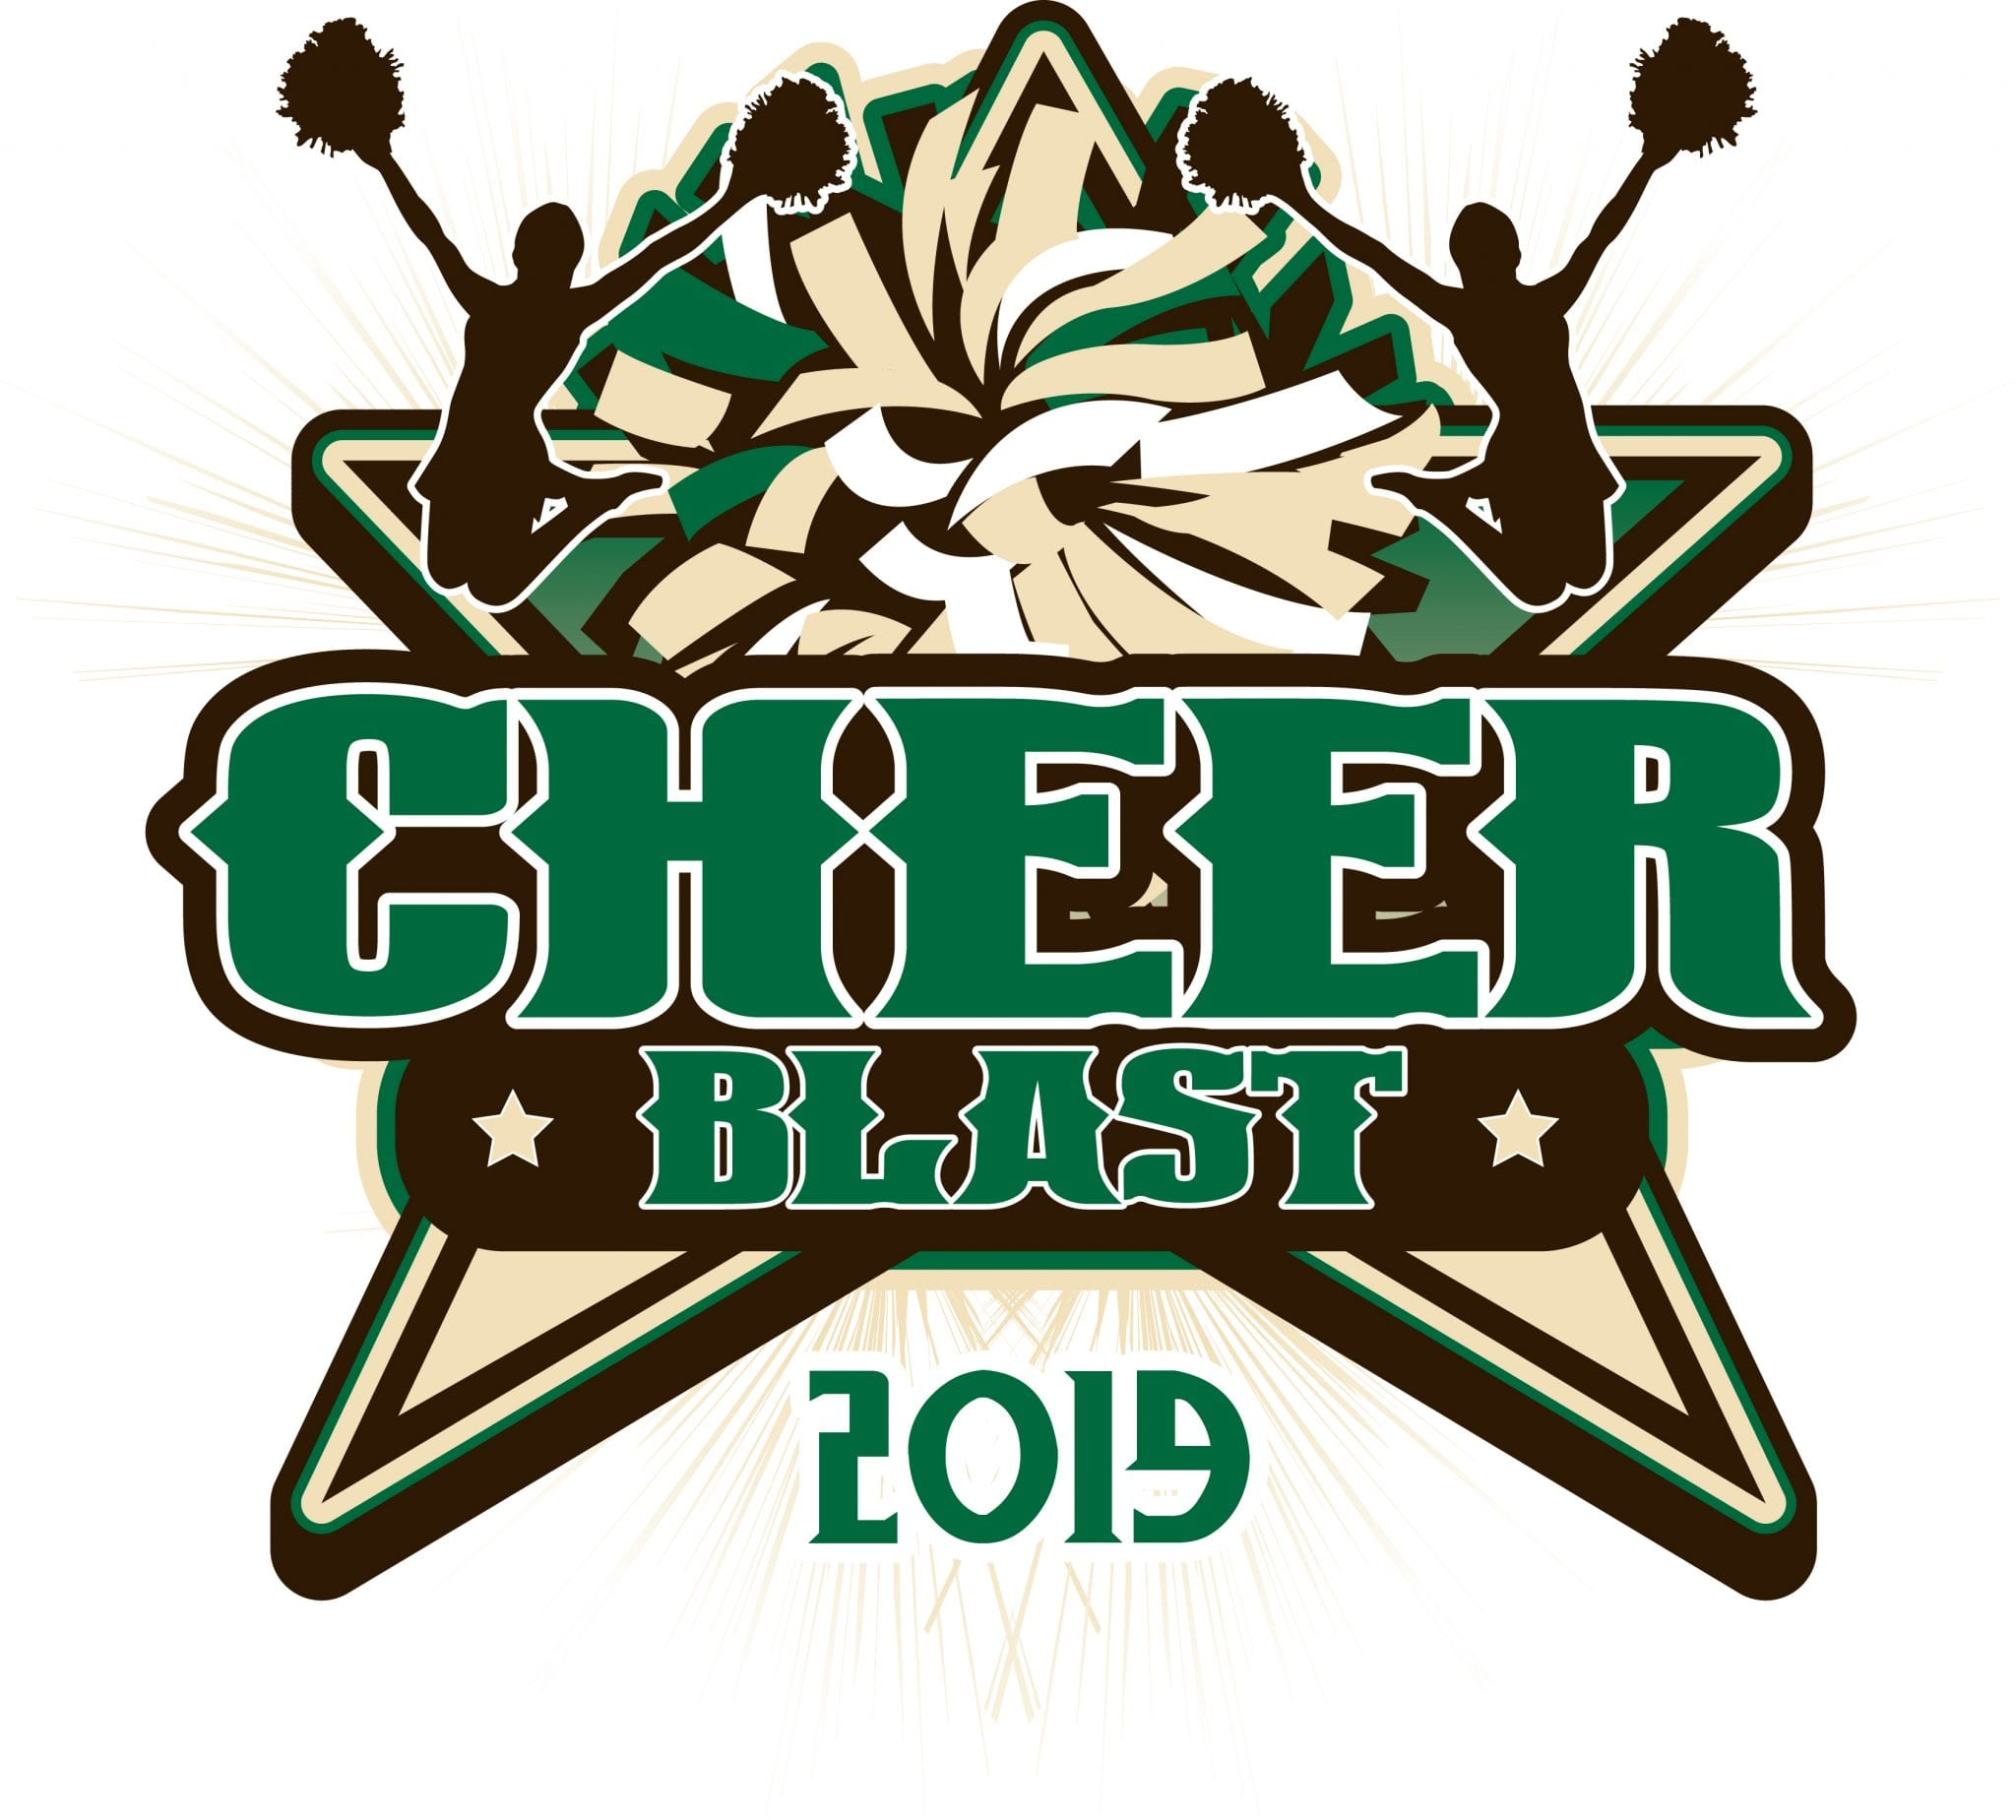 CHEER BLAST 2019 T-shirt vector logo design for print